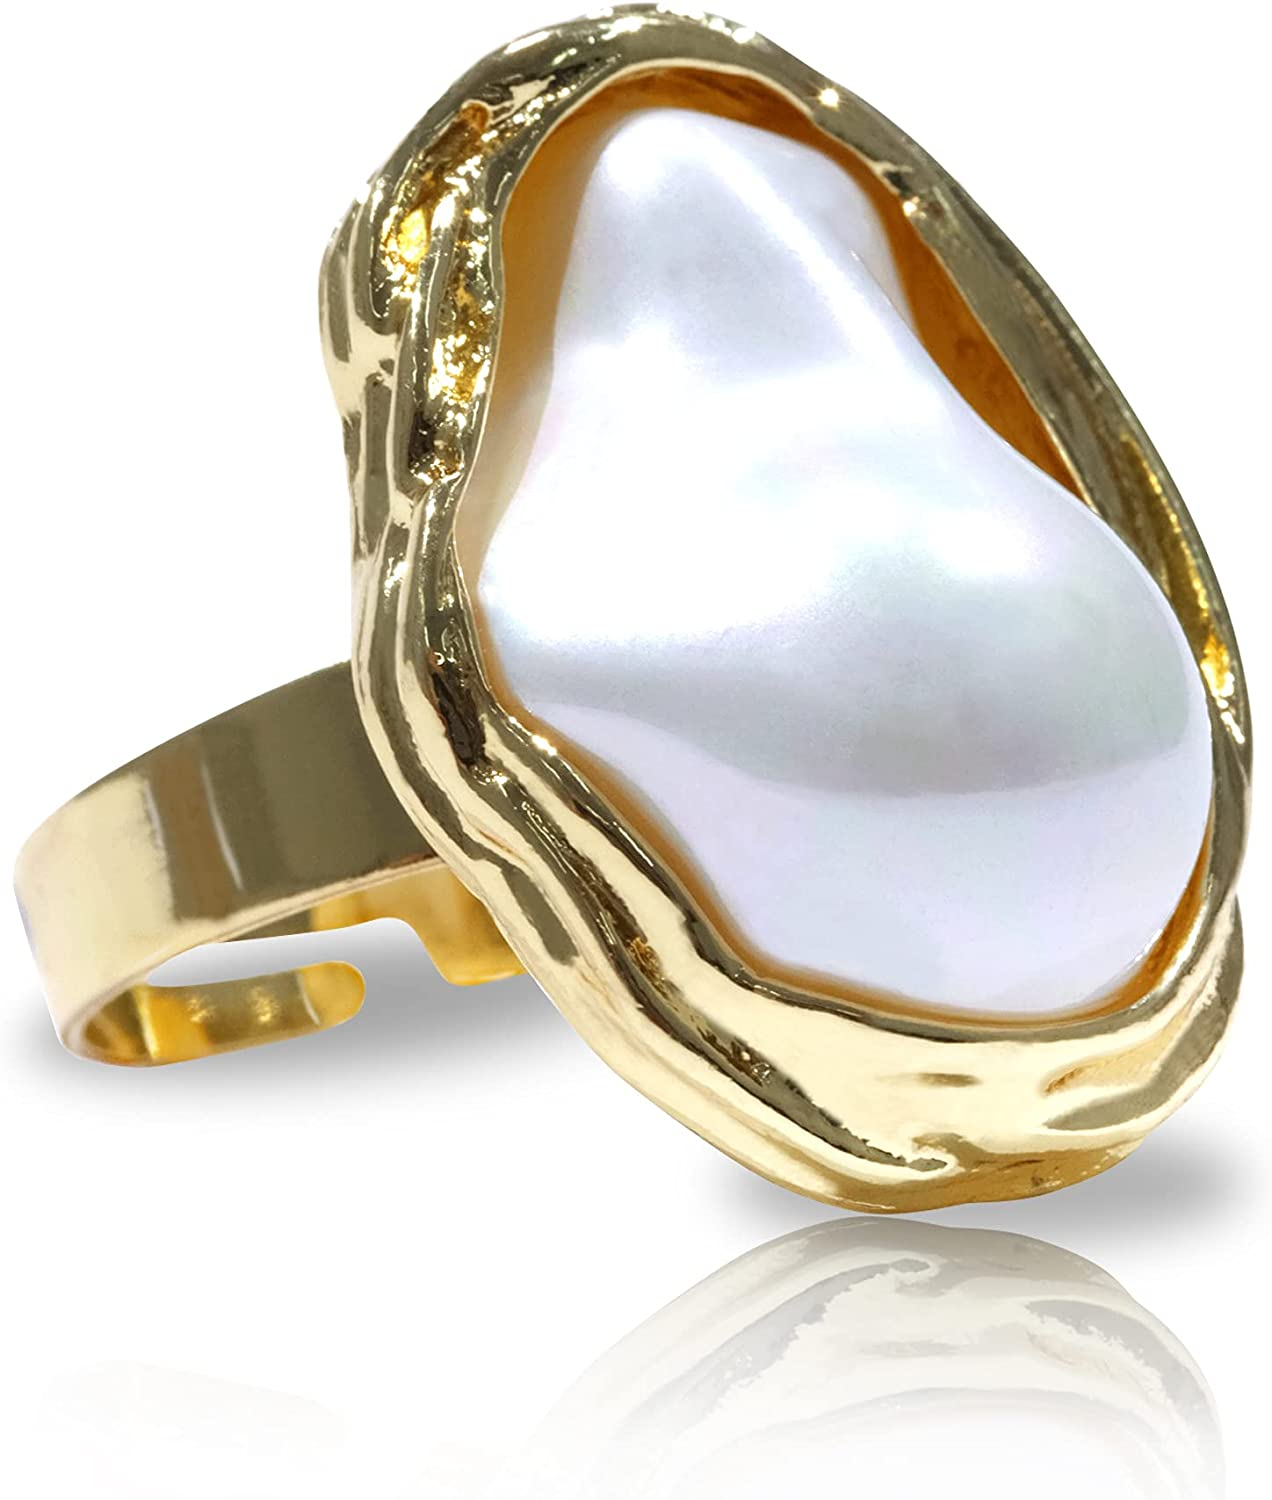 CRASIK Adjustable Pearl Gold Rings for Women,Indie Vintage Pear Rings Gold ,Knuckle Thumb Jewelry Ring